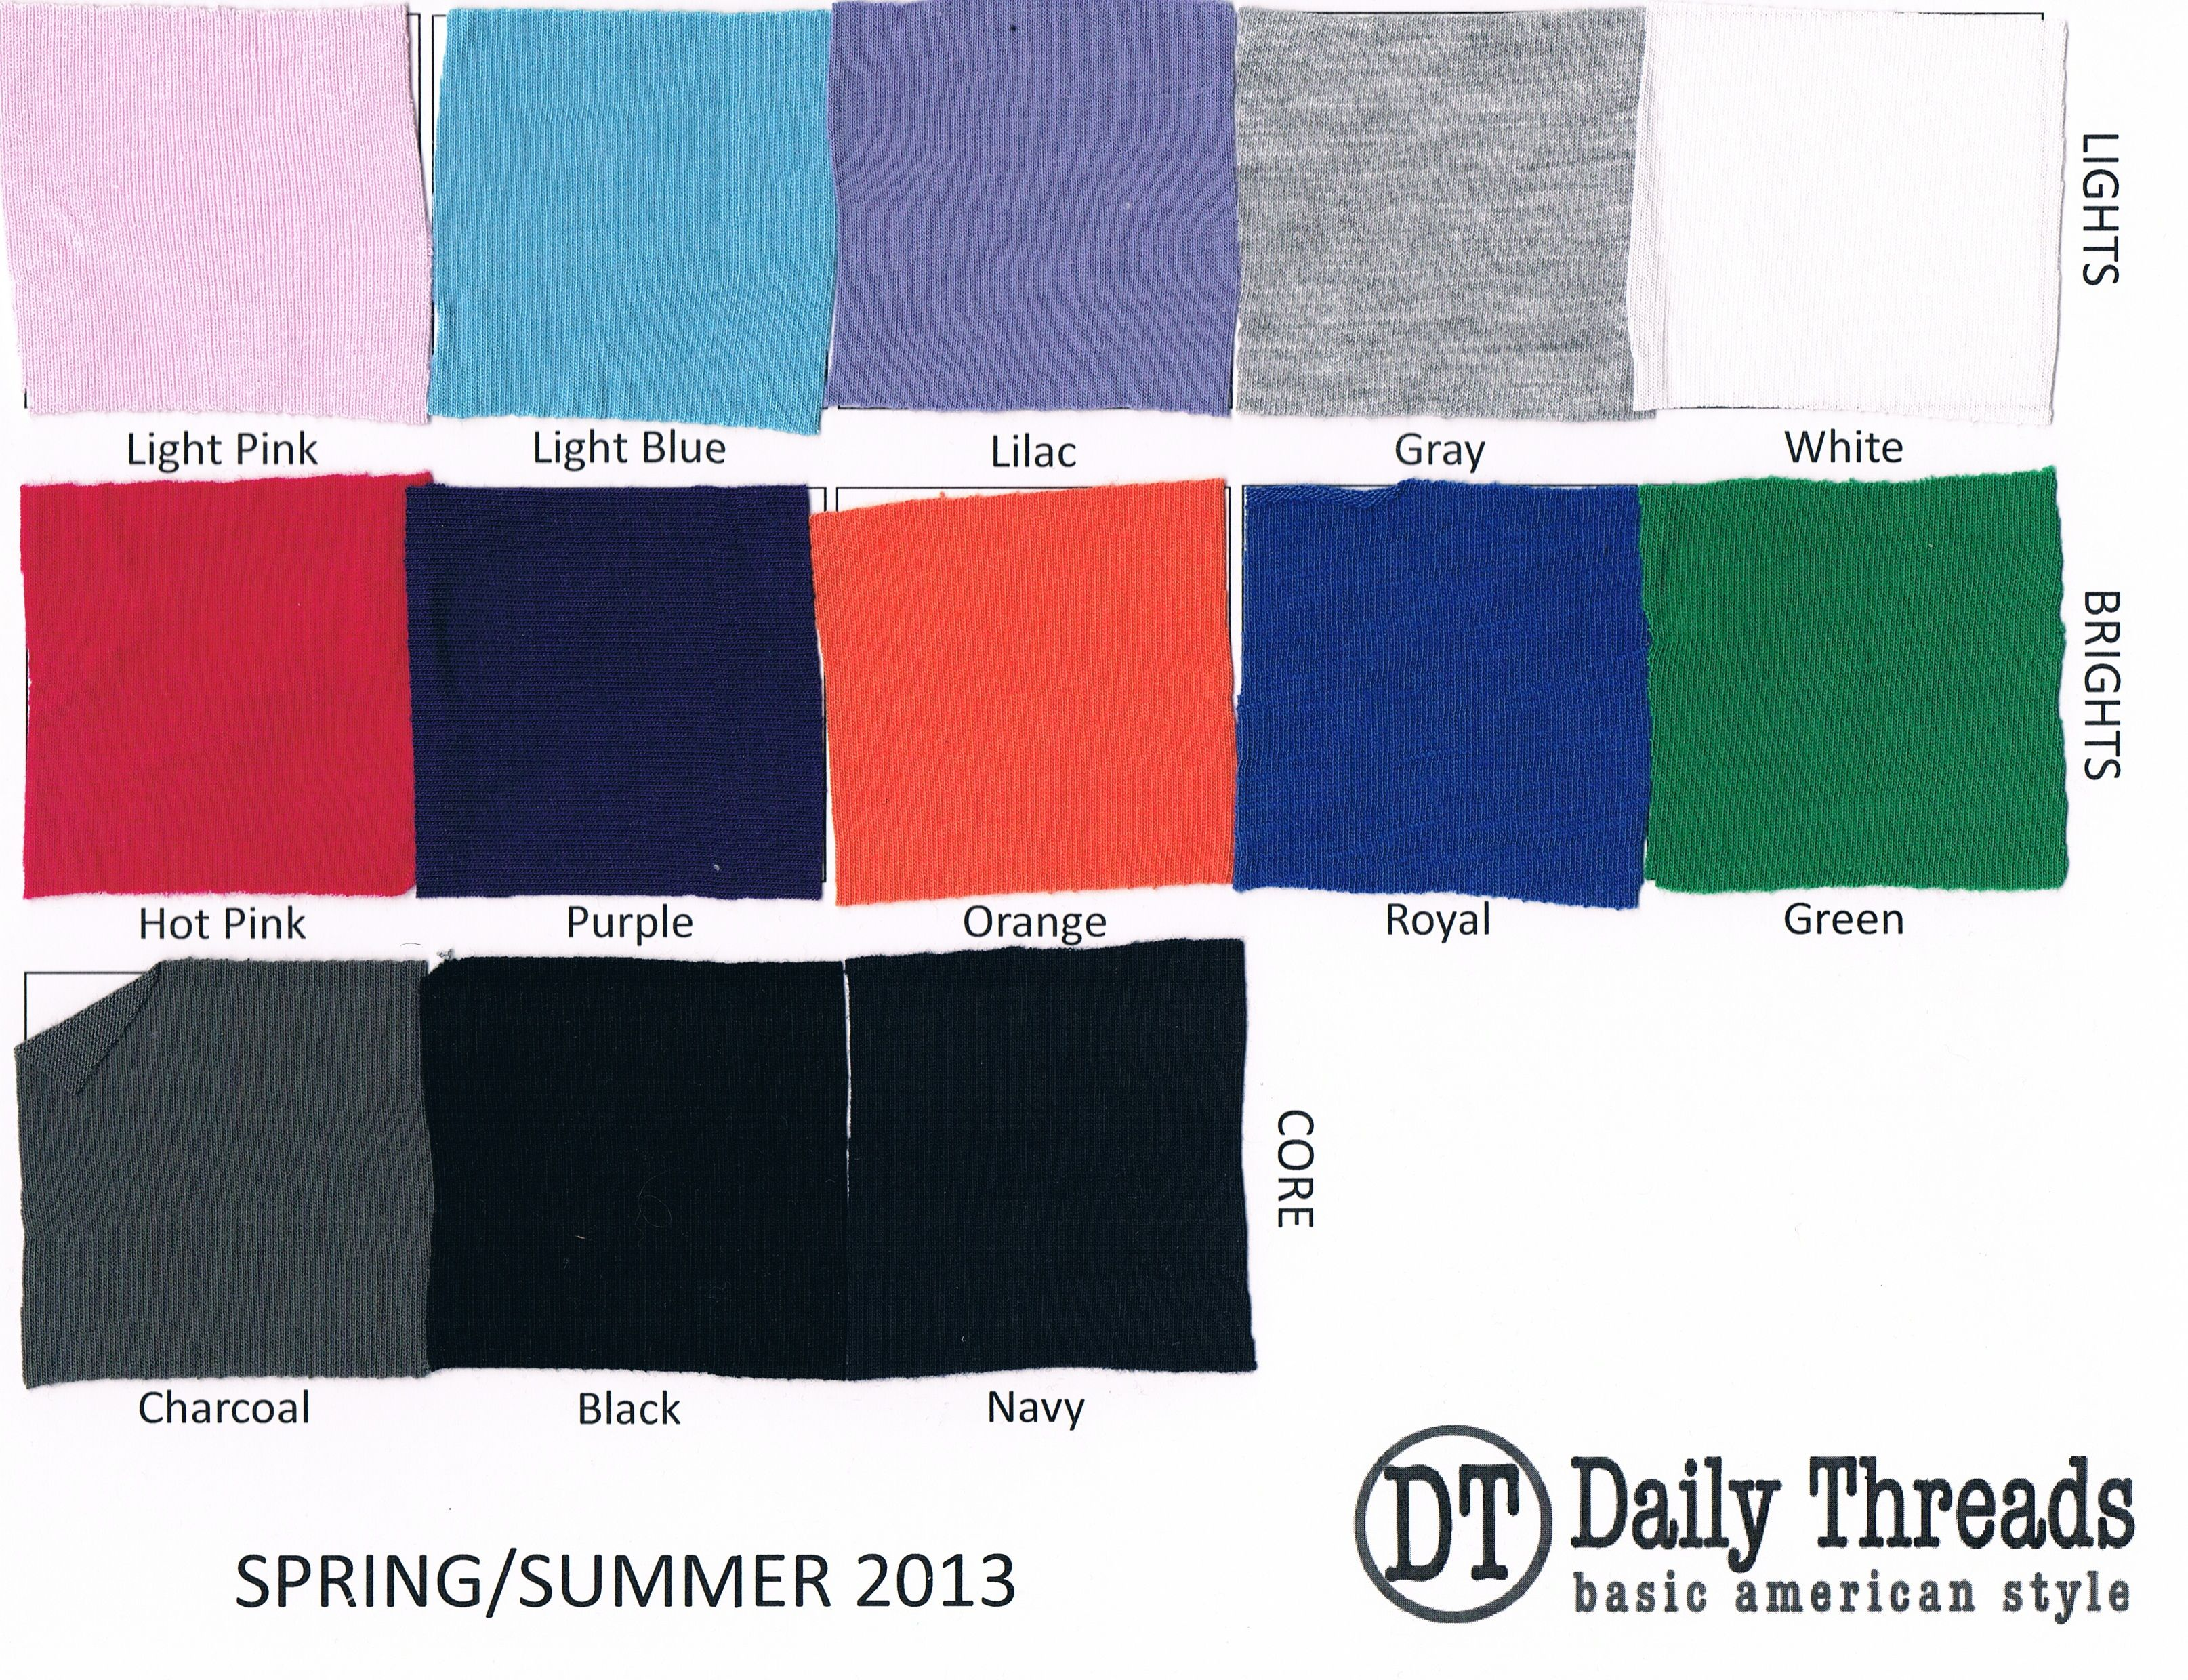 Daily Threads spring colors - these are the solids in our new spring collection